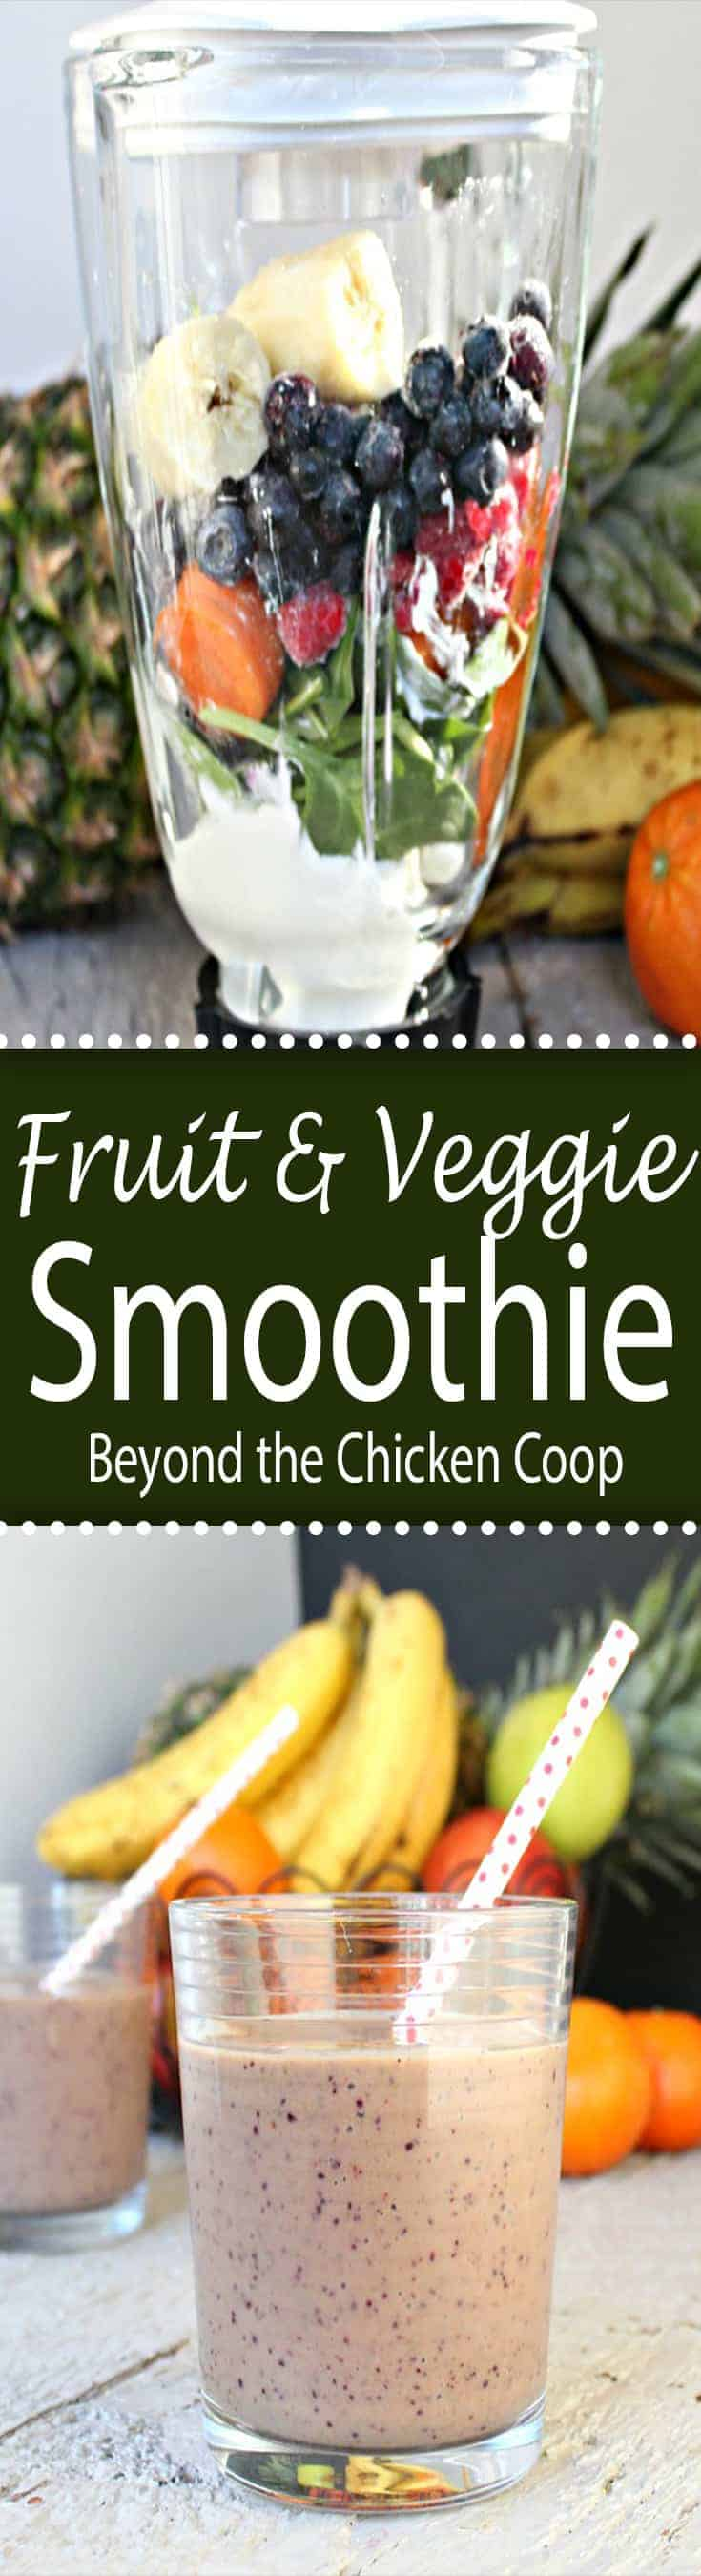 Popular smoothie for barn anmald